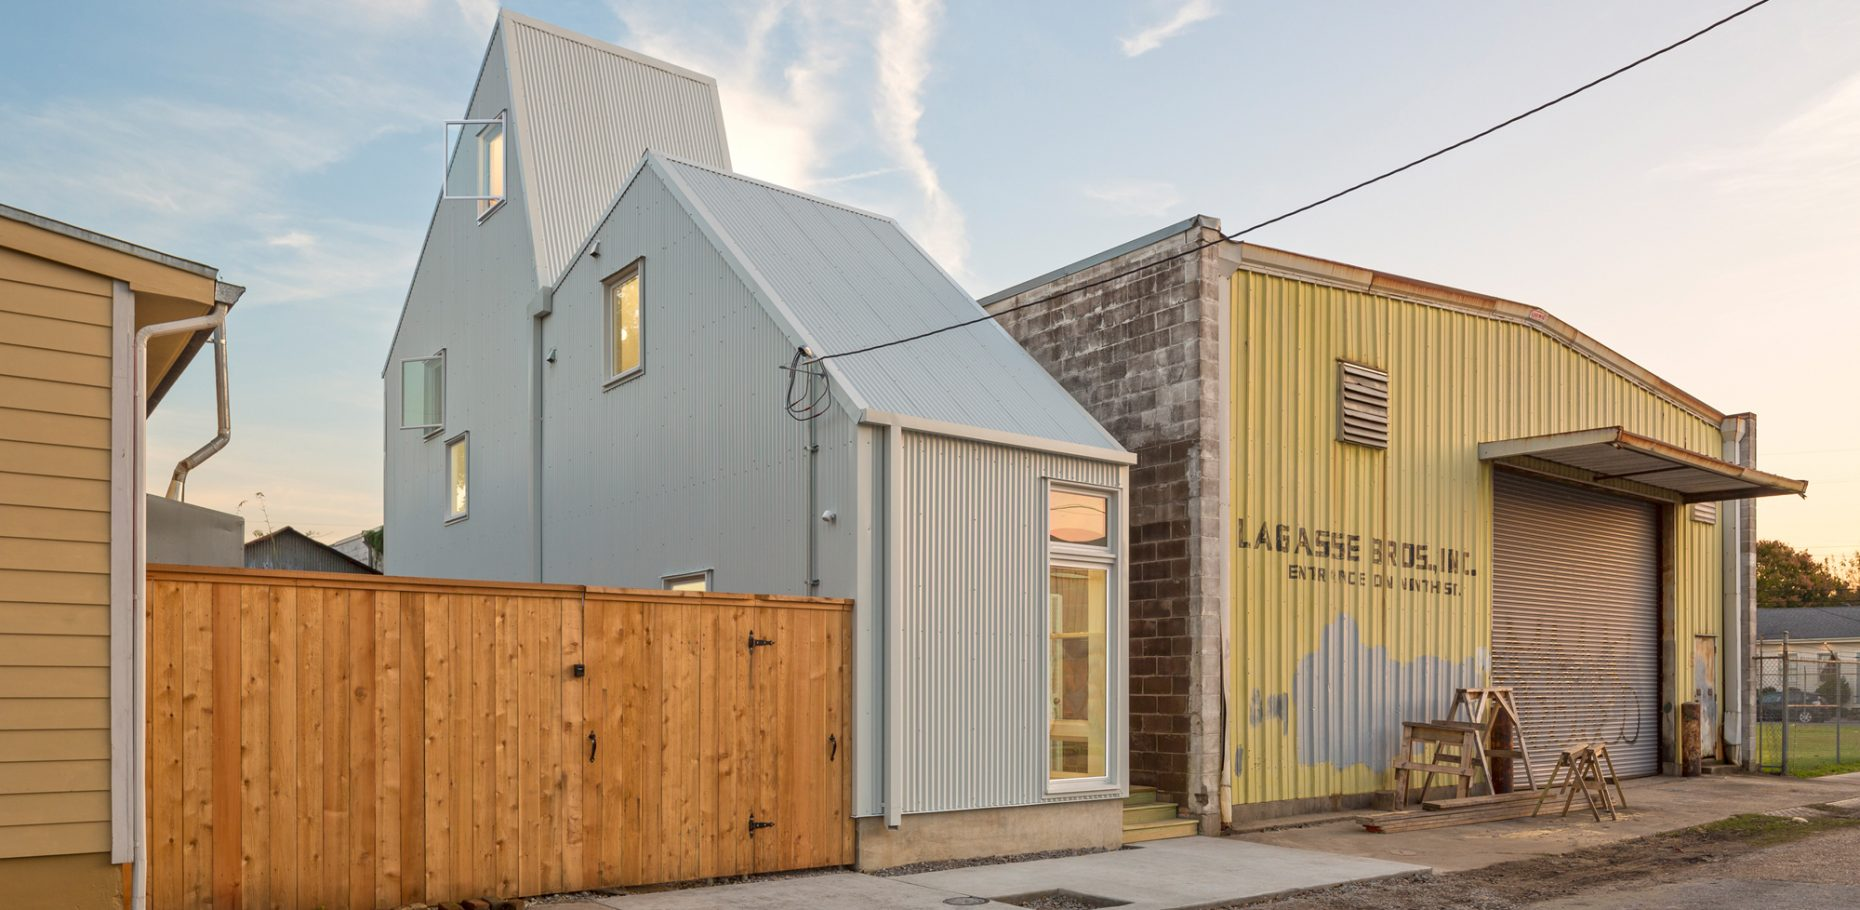 Starter Home* in New Orleans by architect OJT, Office of Jonathan Tate